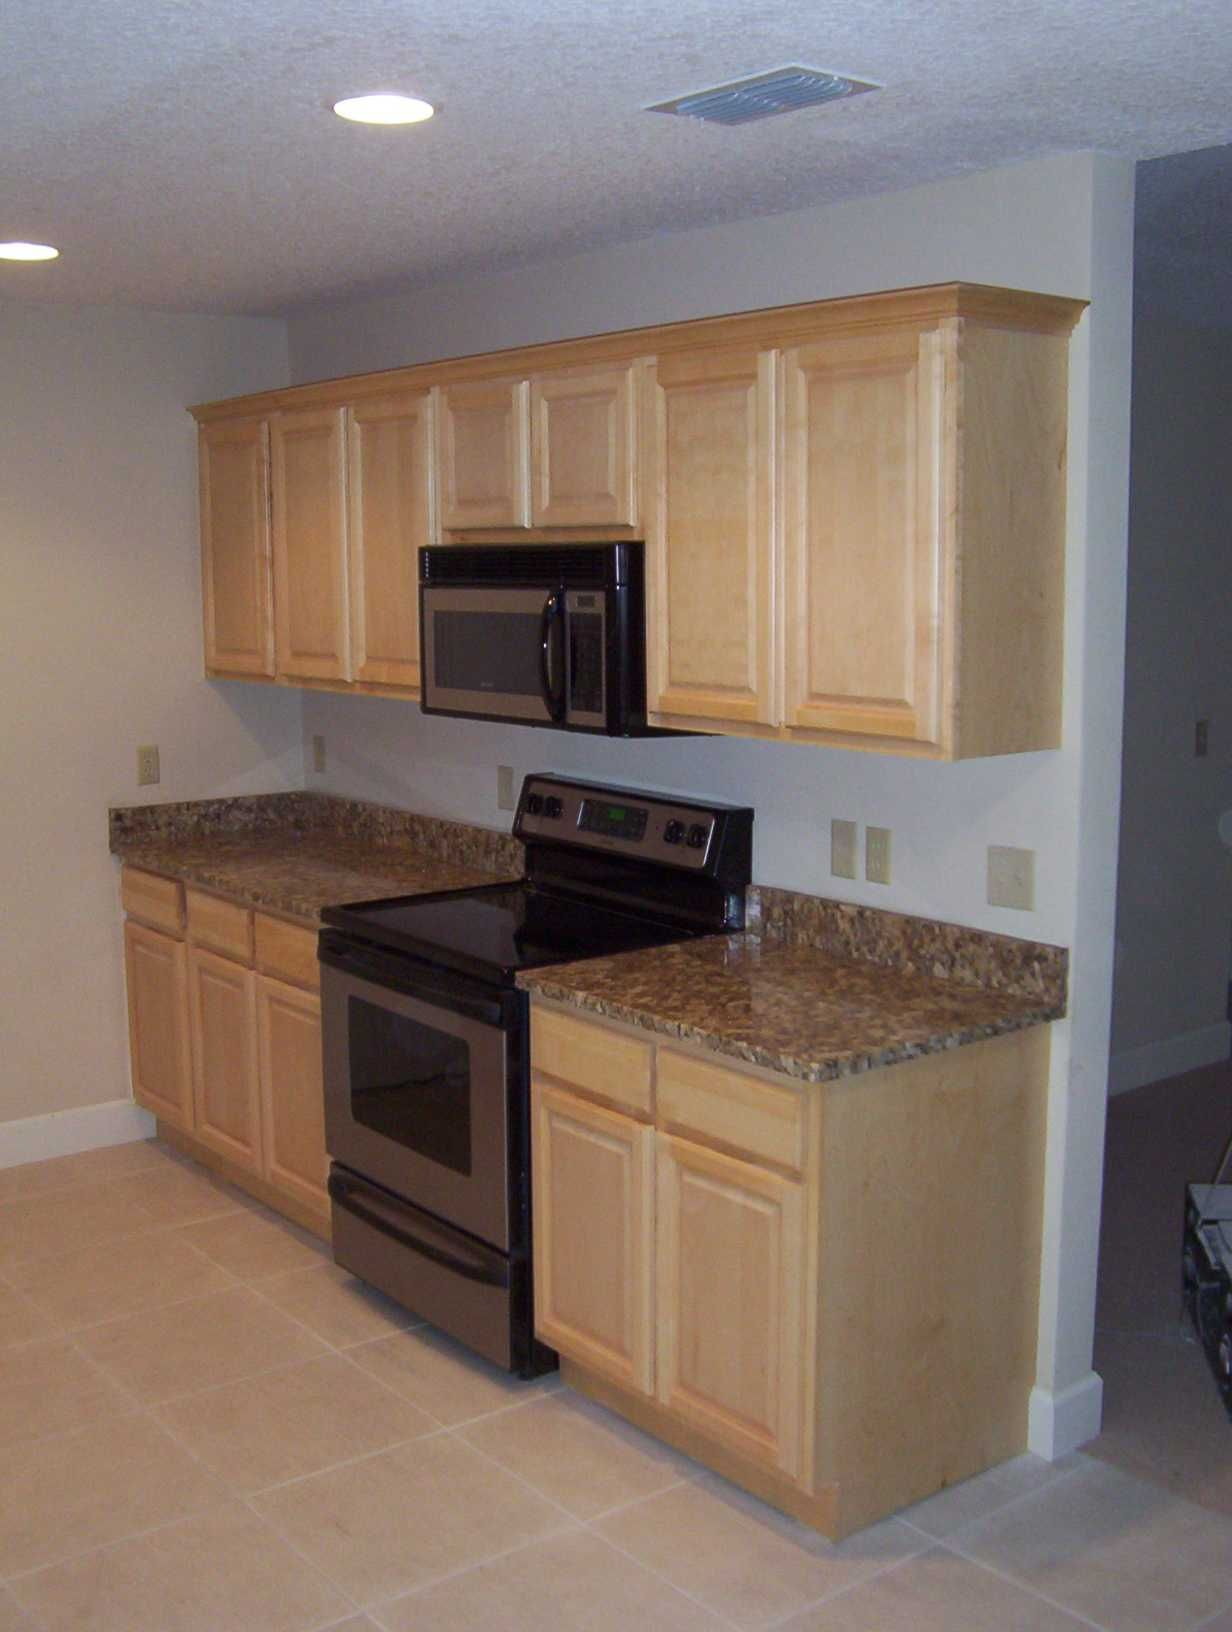 Pictures of kitchens with natural maple cabinets classic for Light colored kitchen cabinets